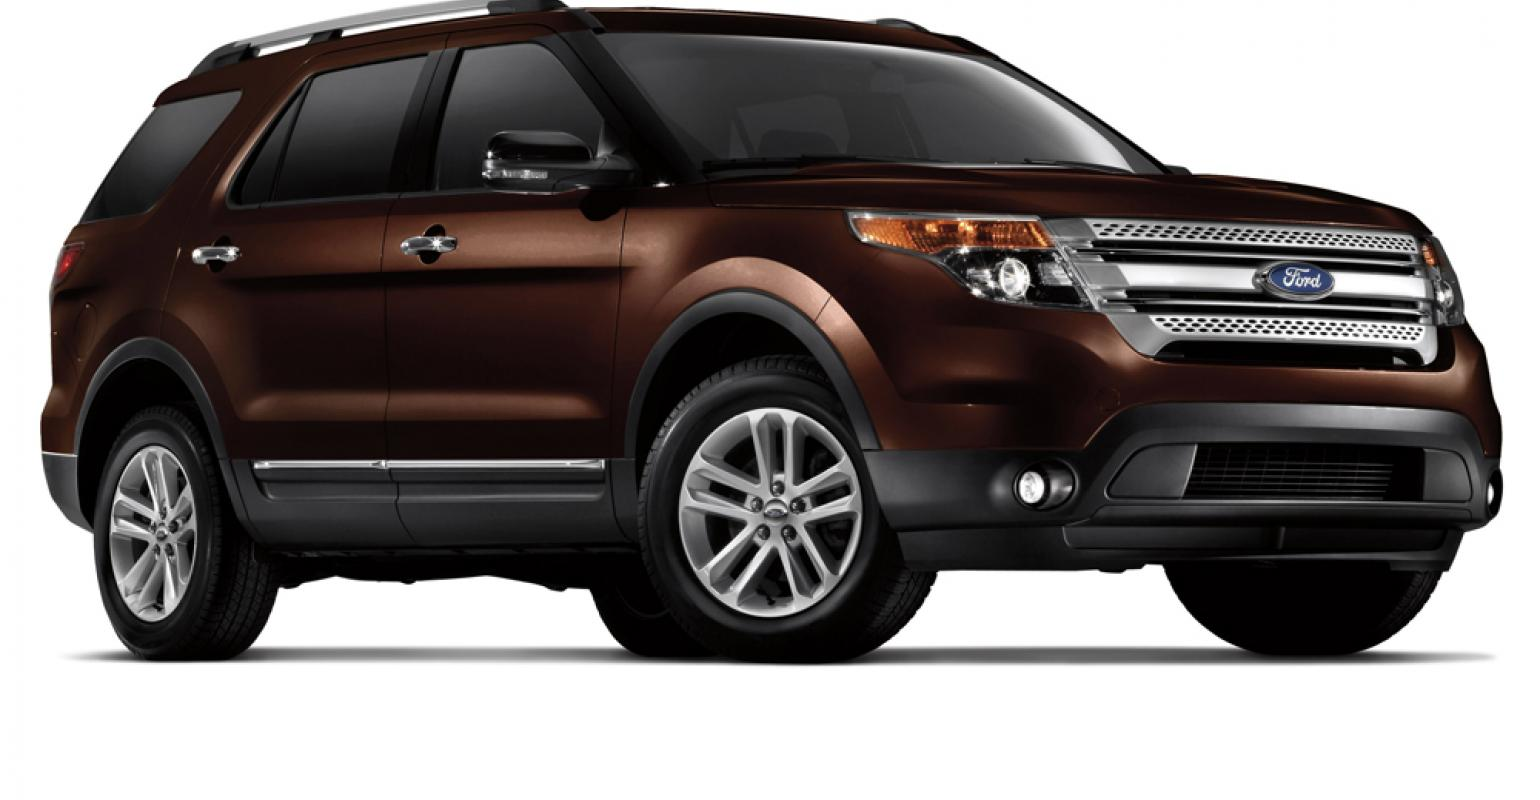 New Shades Such As Ford Explorerrsquos Kodiak Brown Gaining Pority With Car Ers